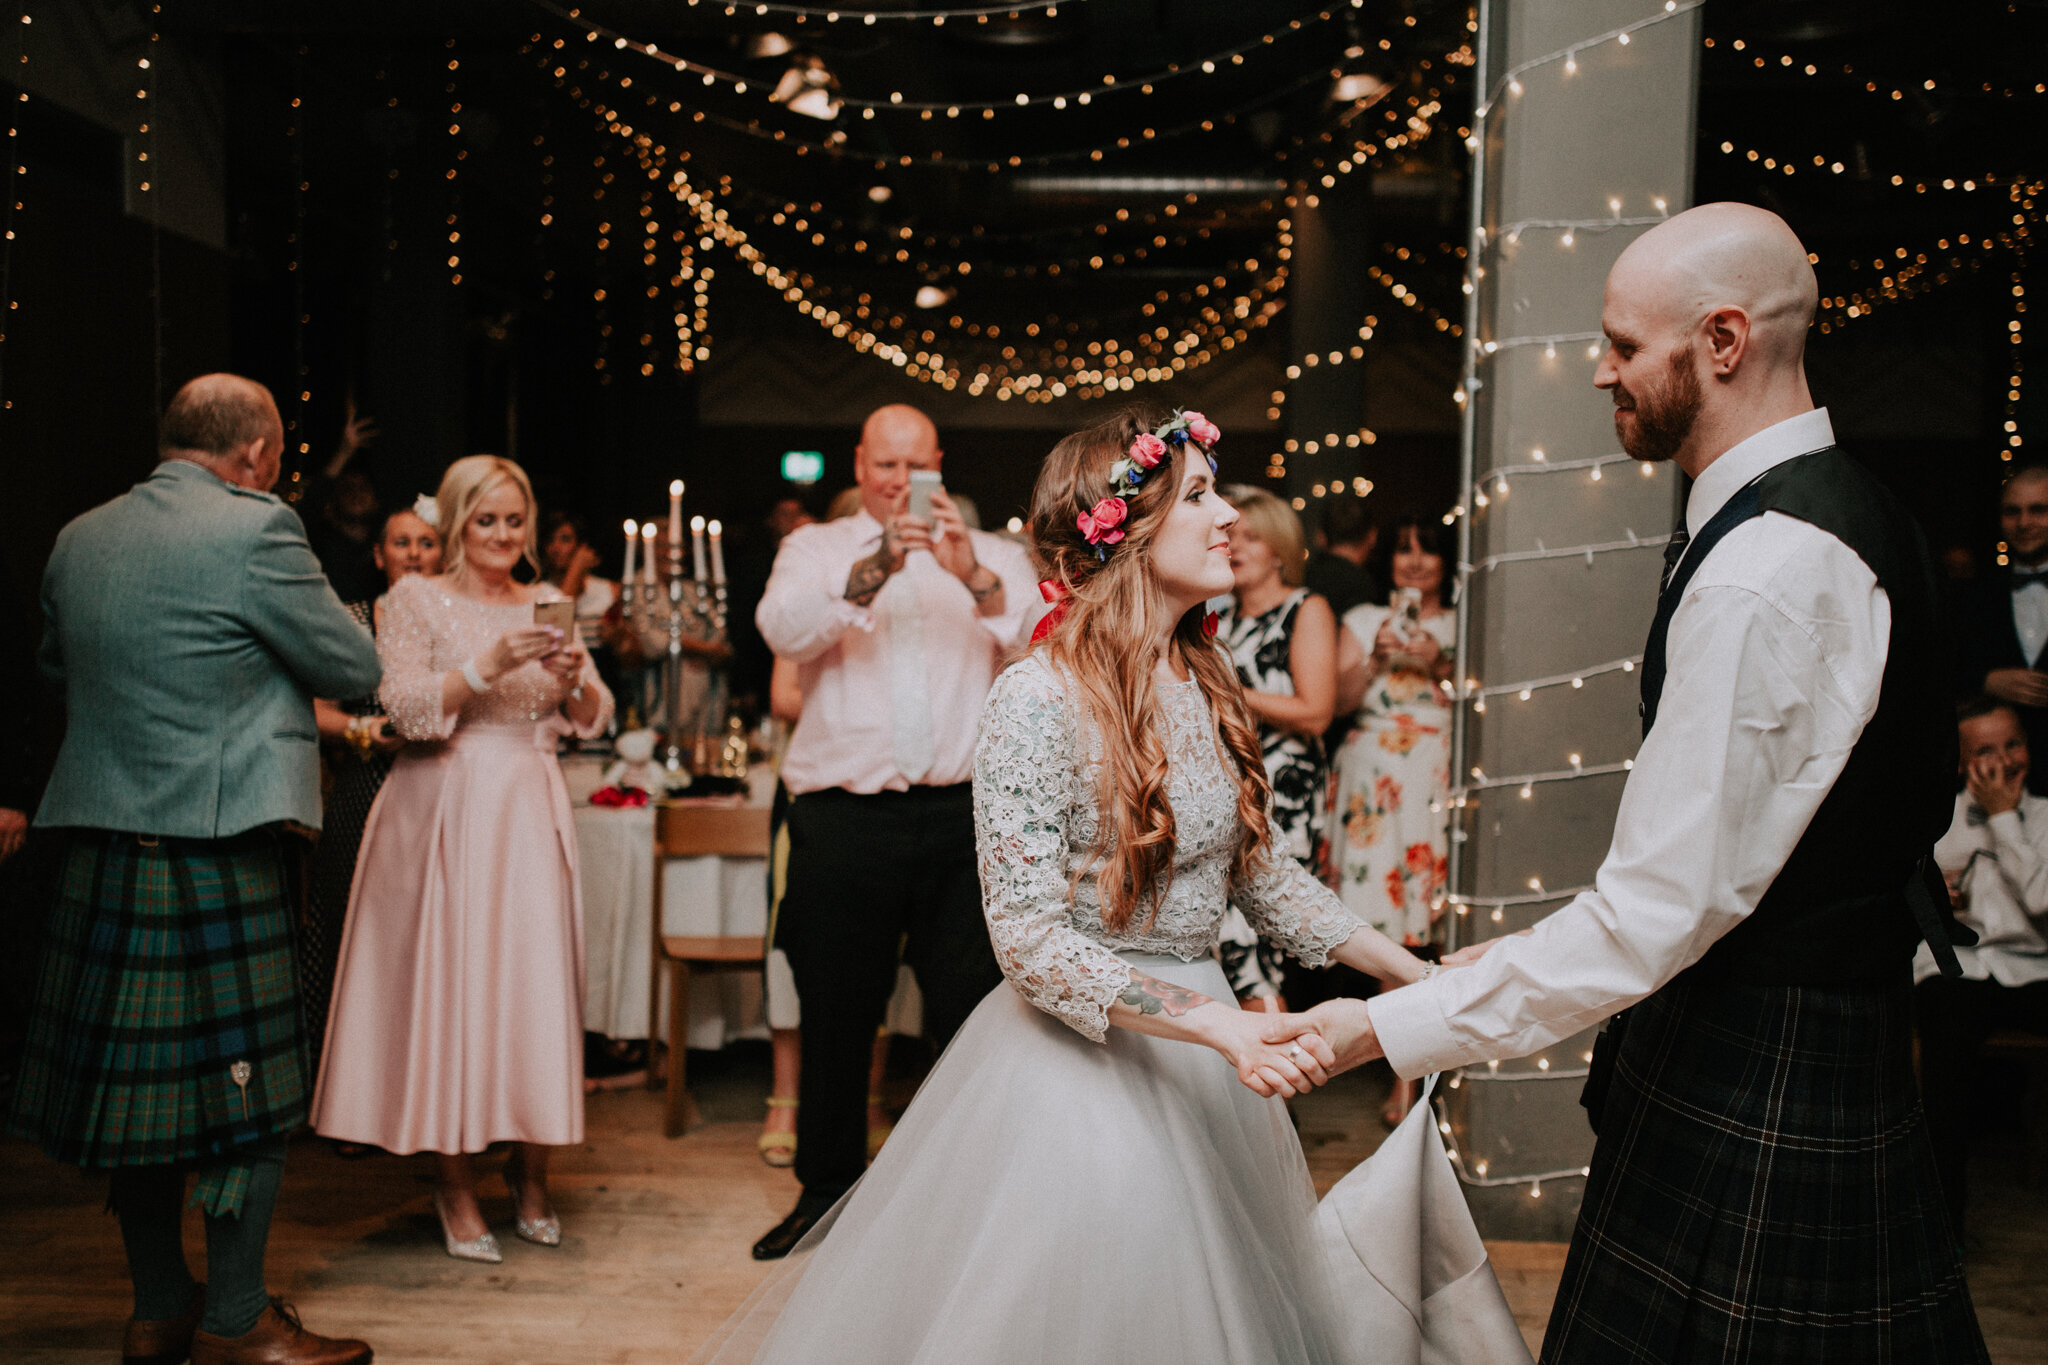 The first dance as a husband and wife at West Brewery